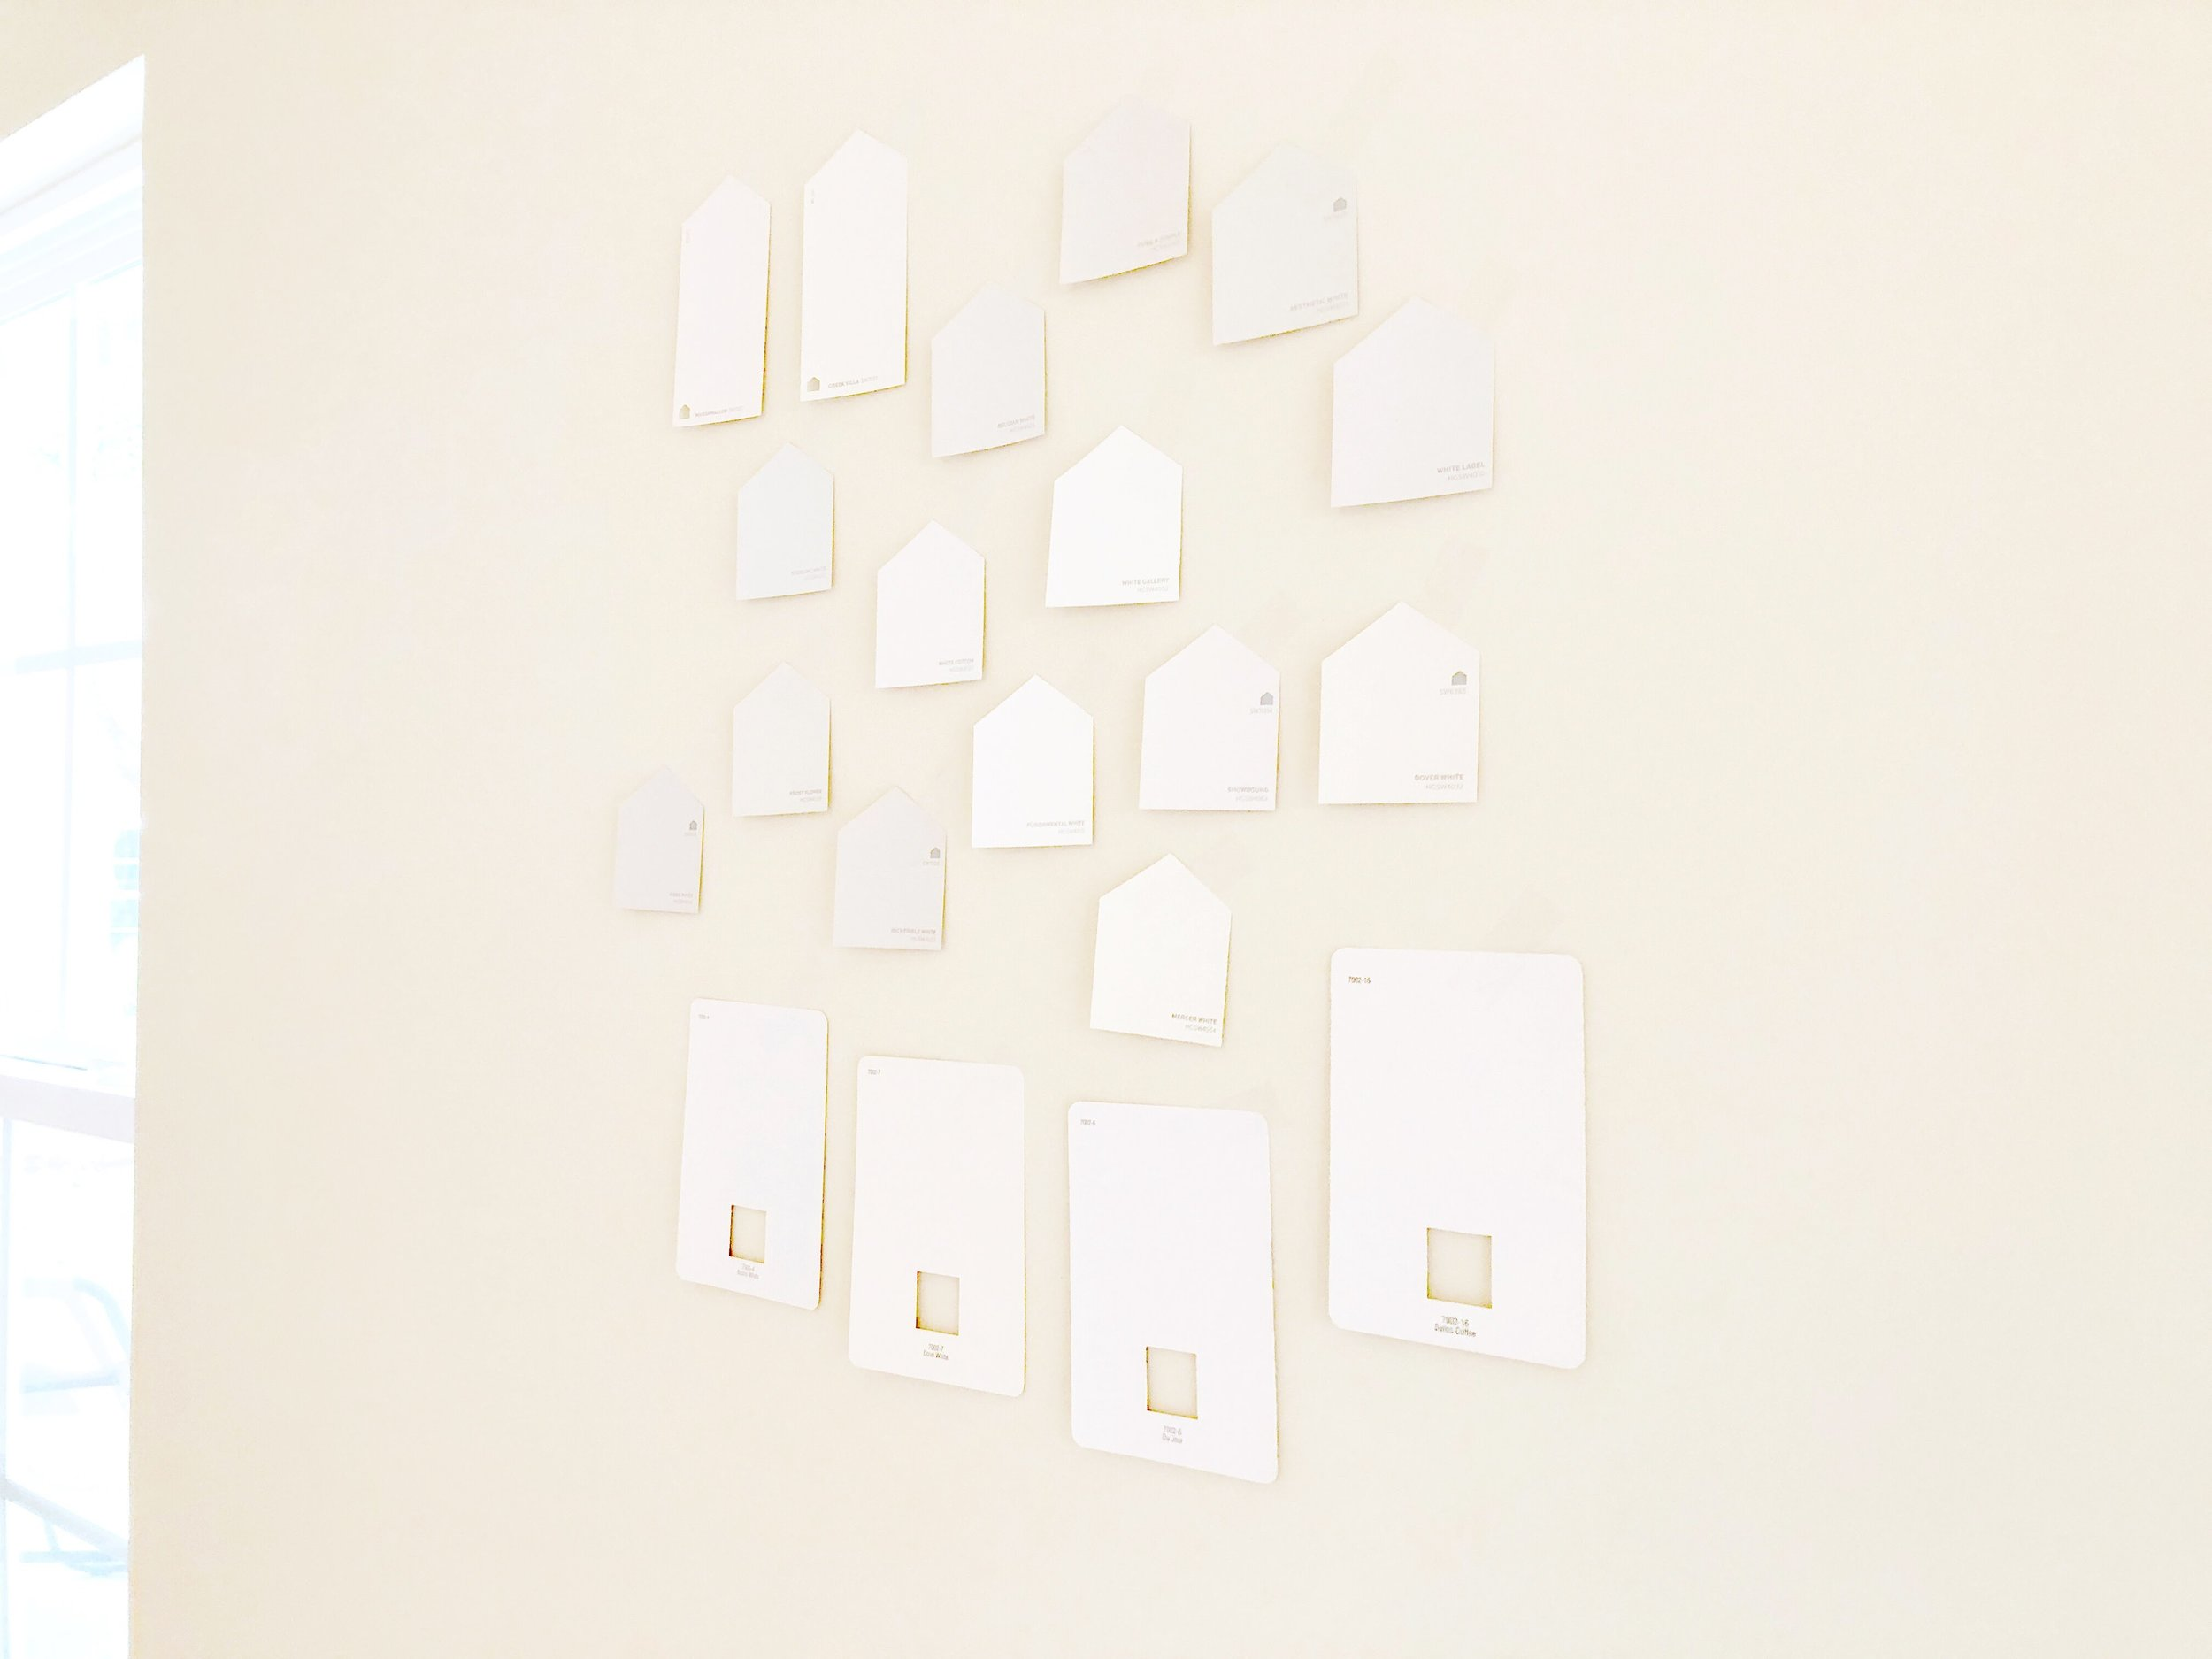 Now that we own the house, it's time to make some more upgrades - like choosing the perfect shade of white paint!